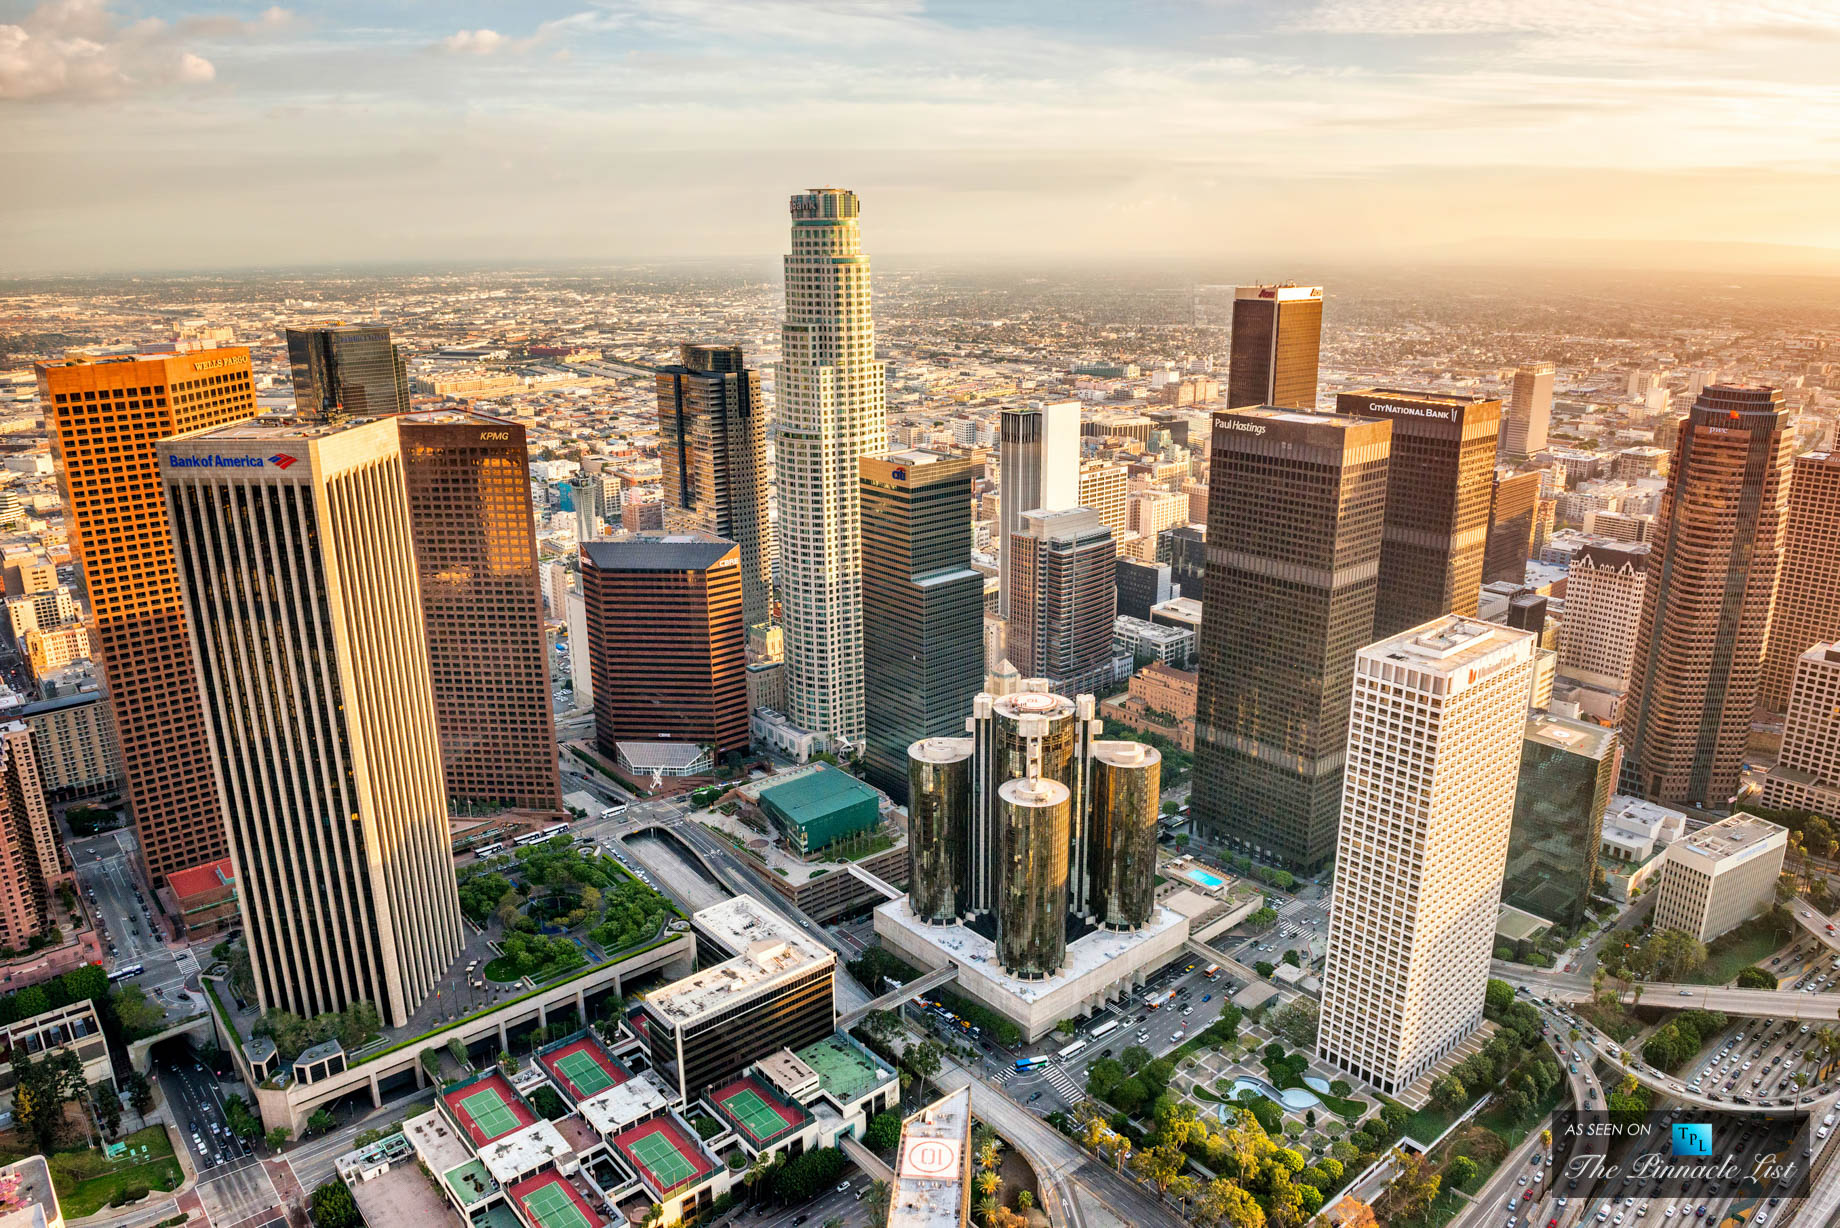 Aerial View of Office Towers - Downtown Los Angeles, California, USA